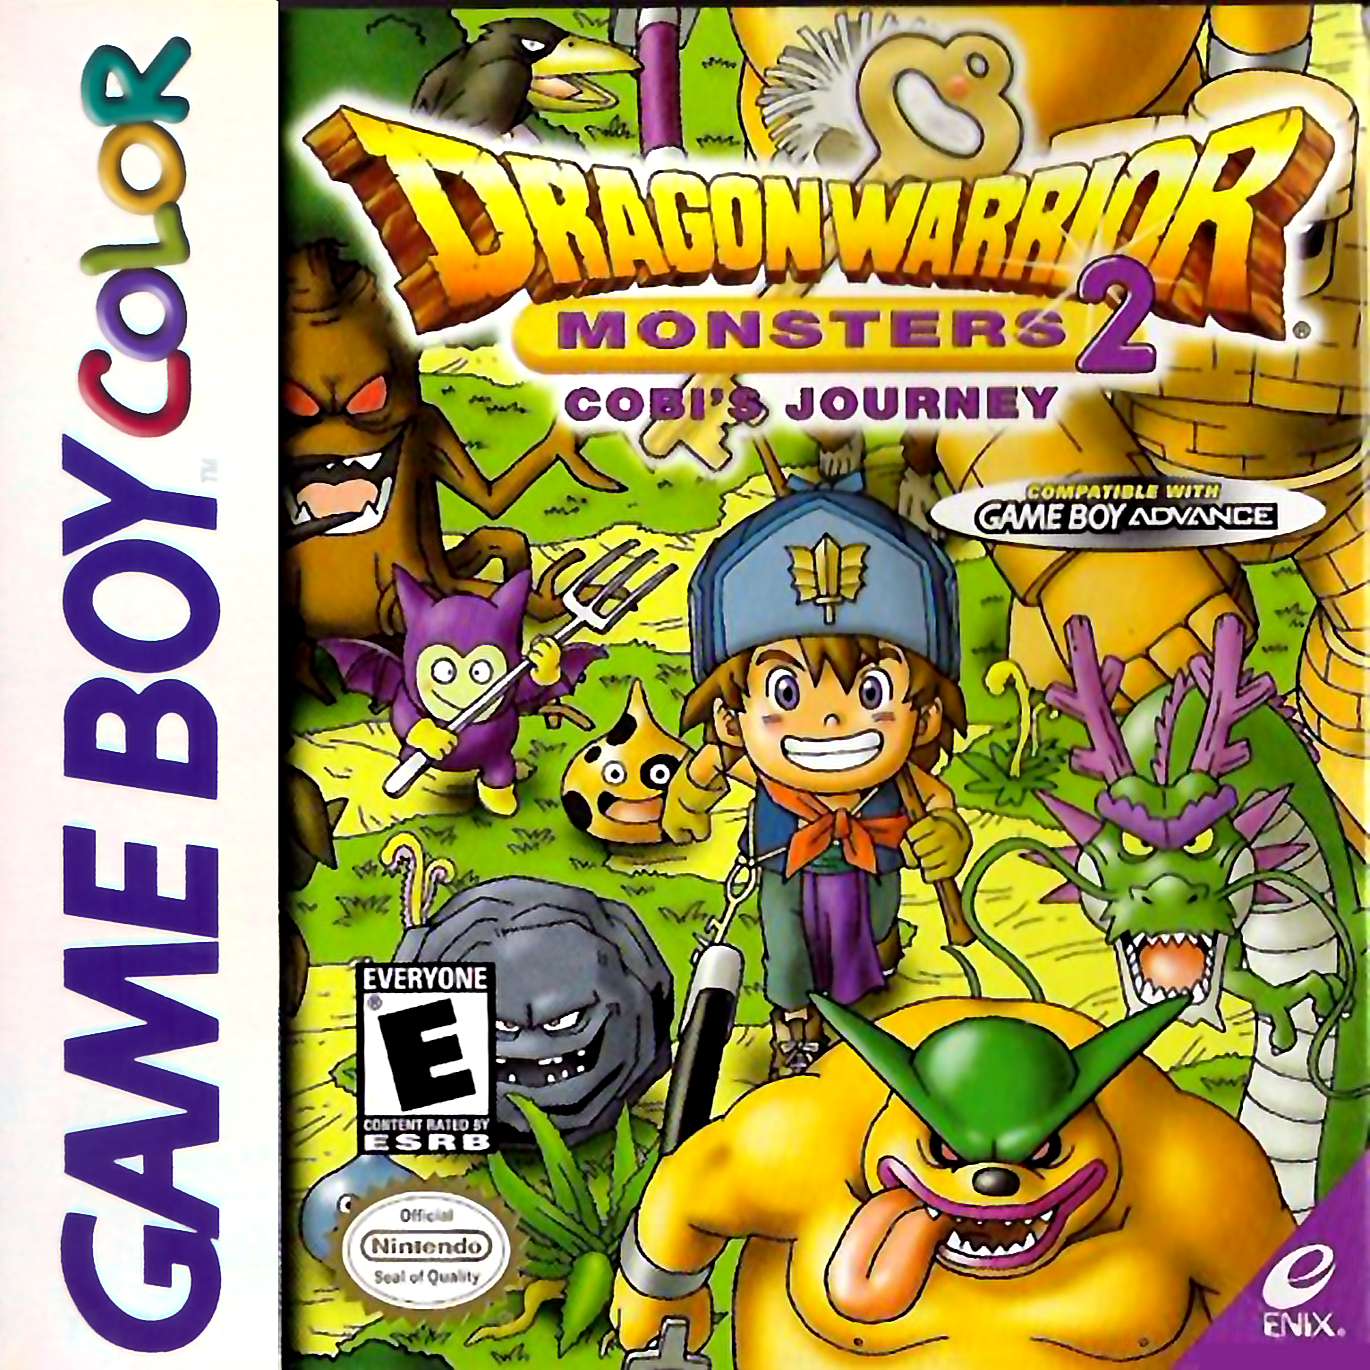 Dragon Warrior Monsters 2 - Cobi's Journey Nintendo Game Boy Color cover artwork